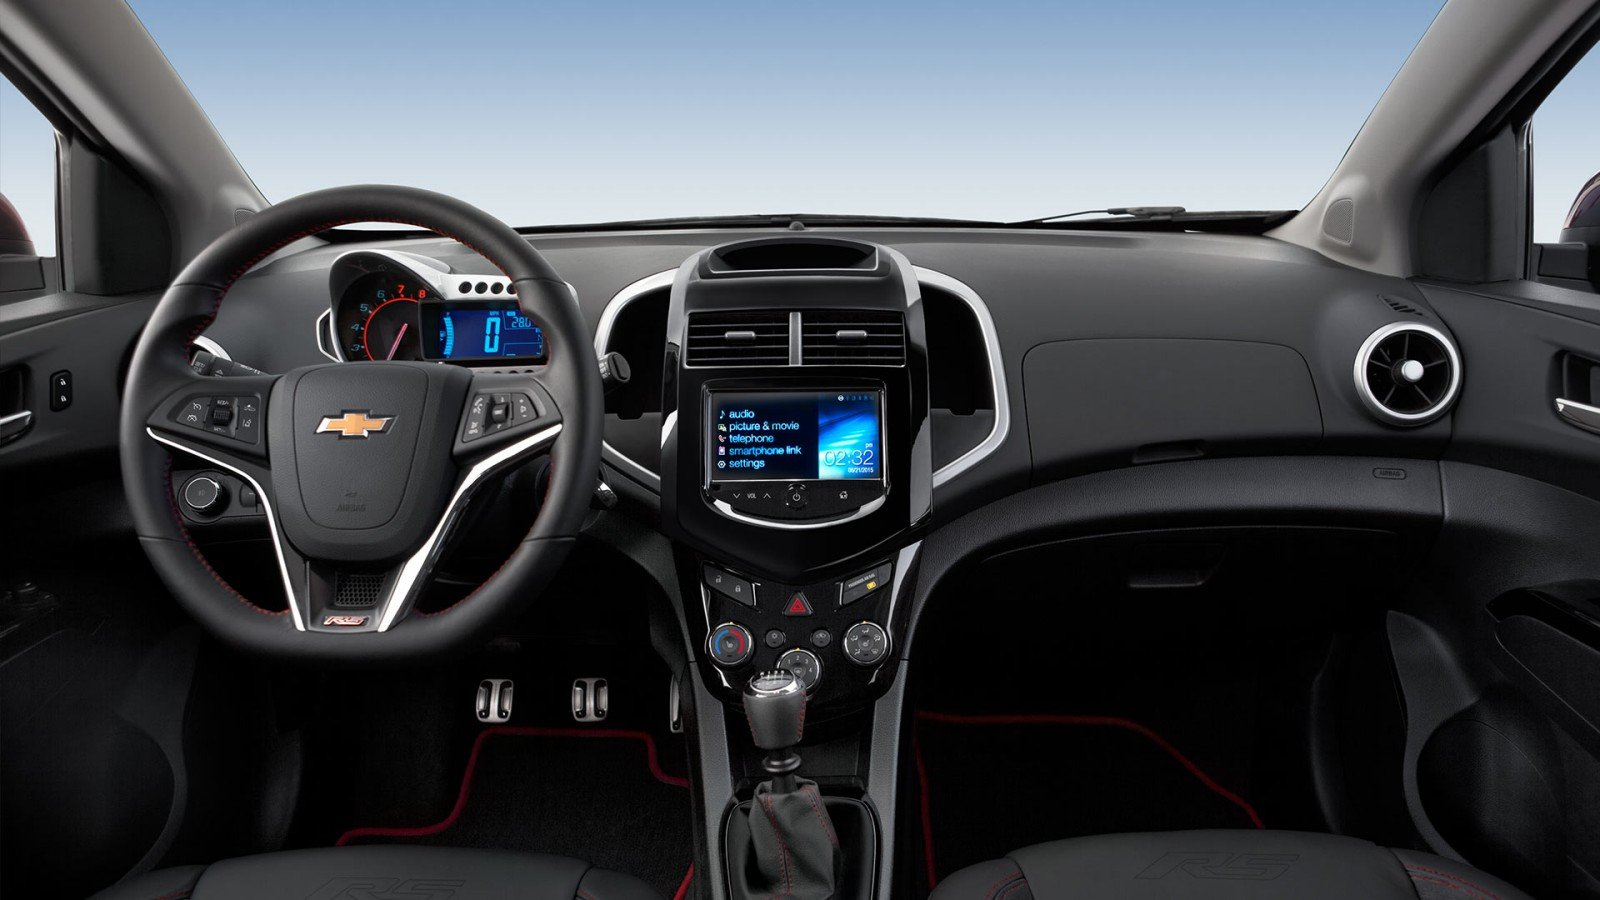 hight resolution of new chevrolet sonic interior features